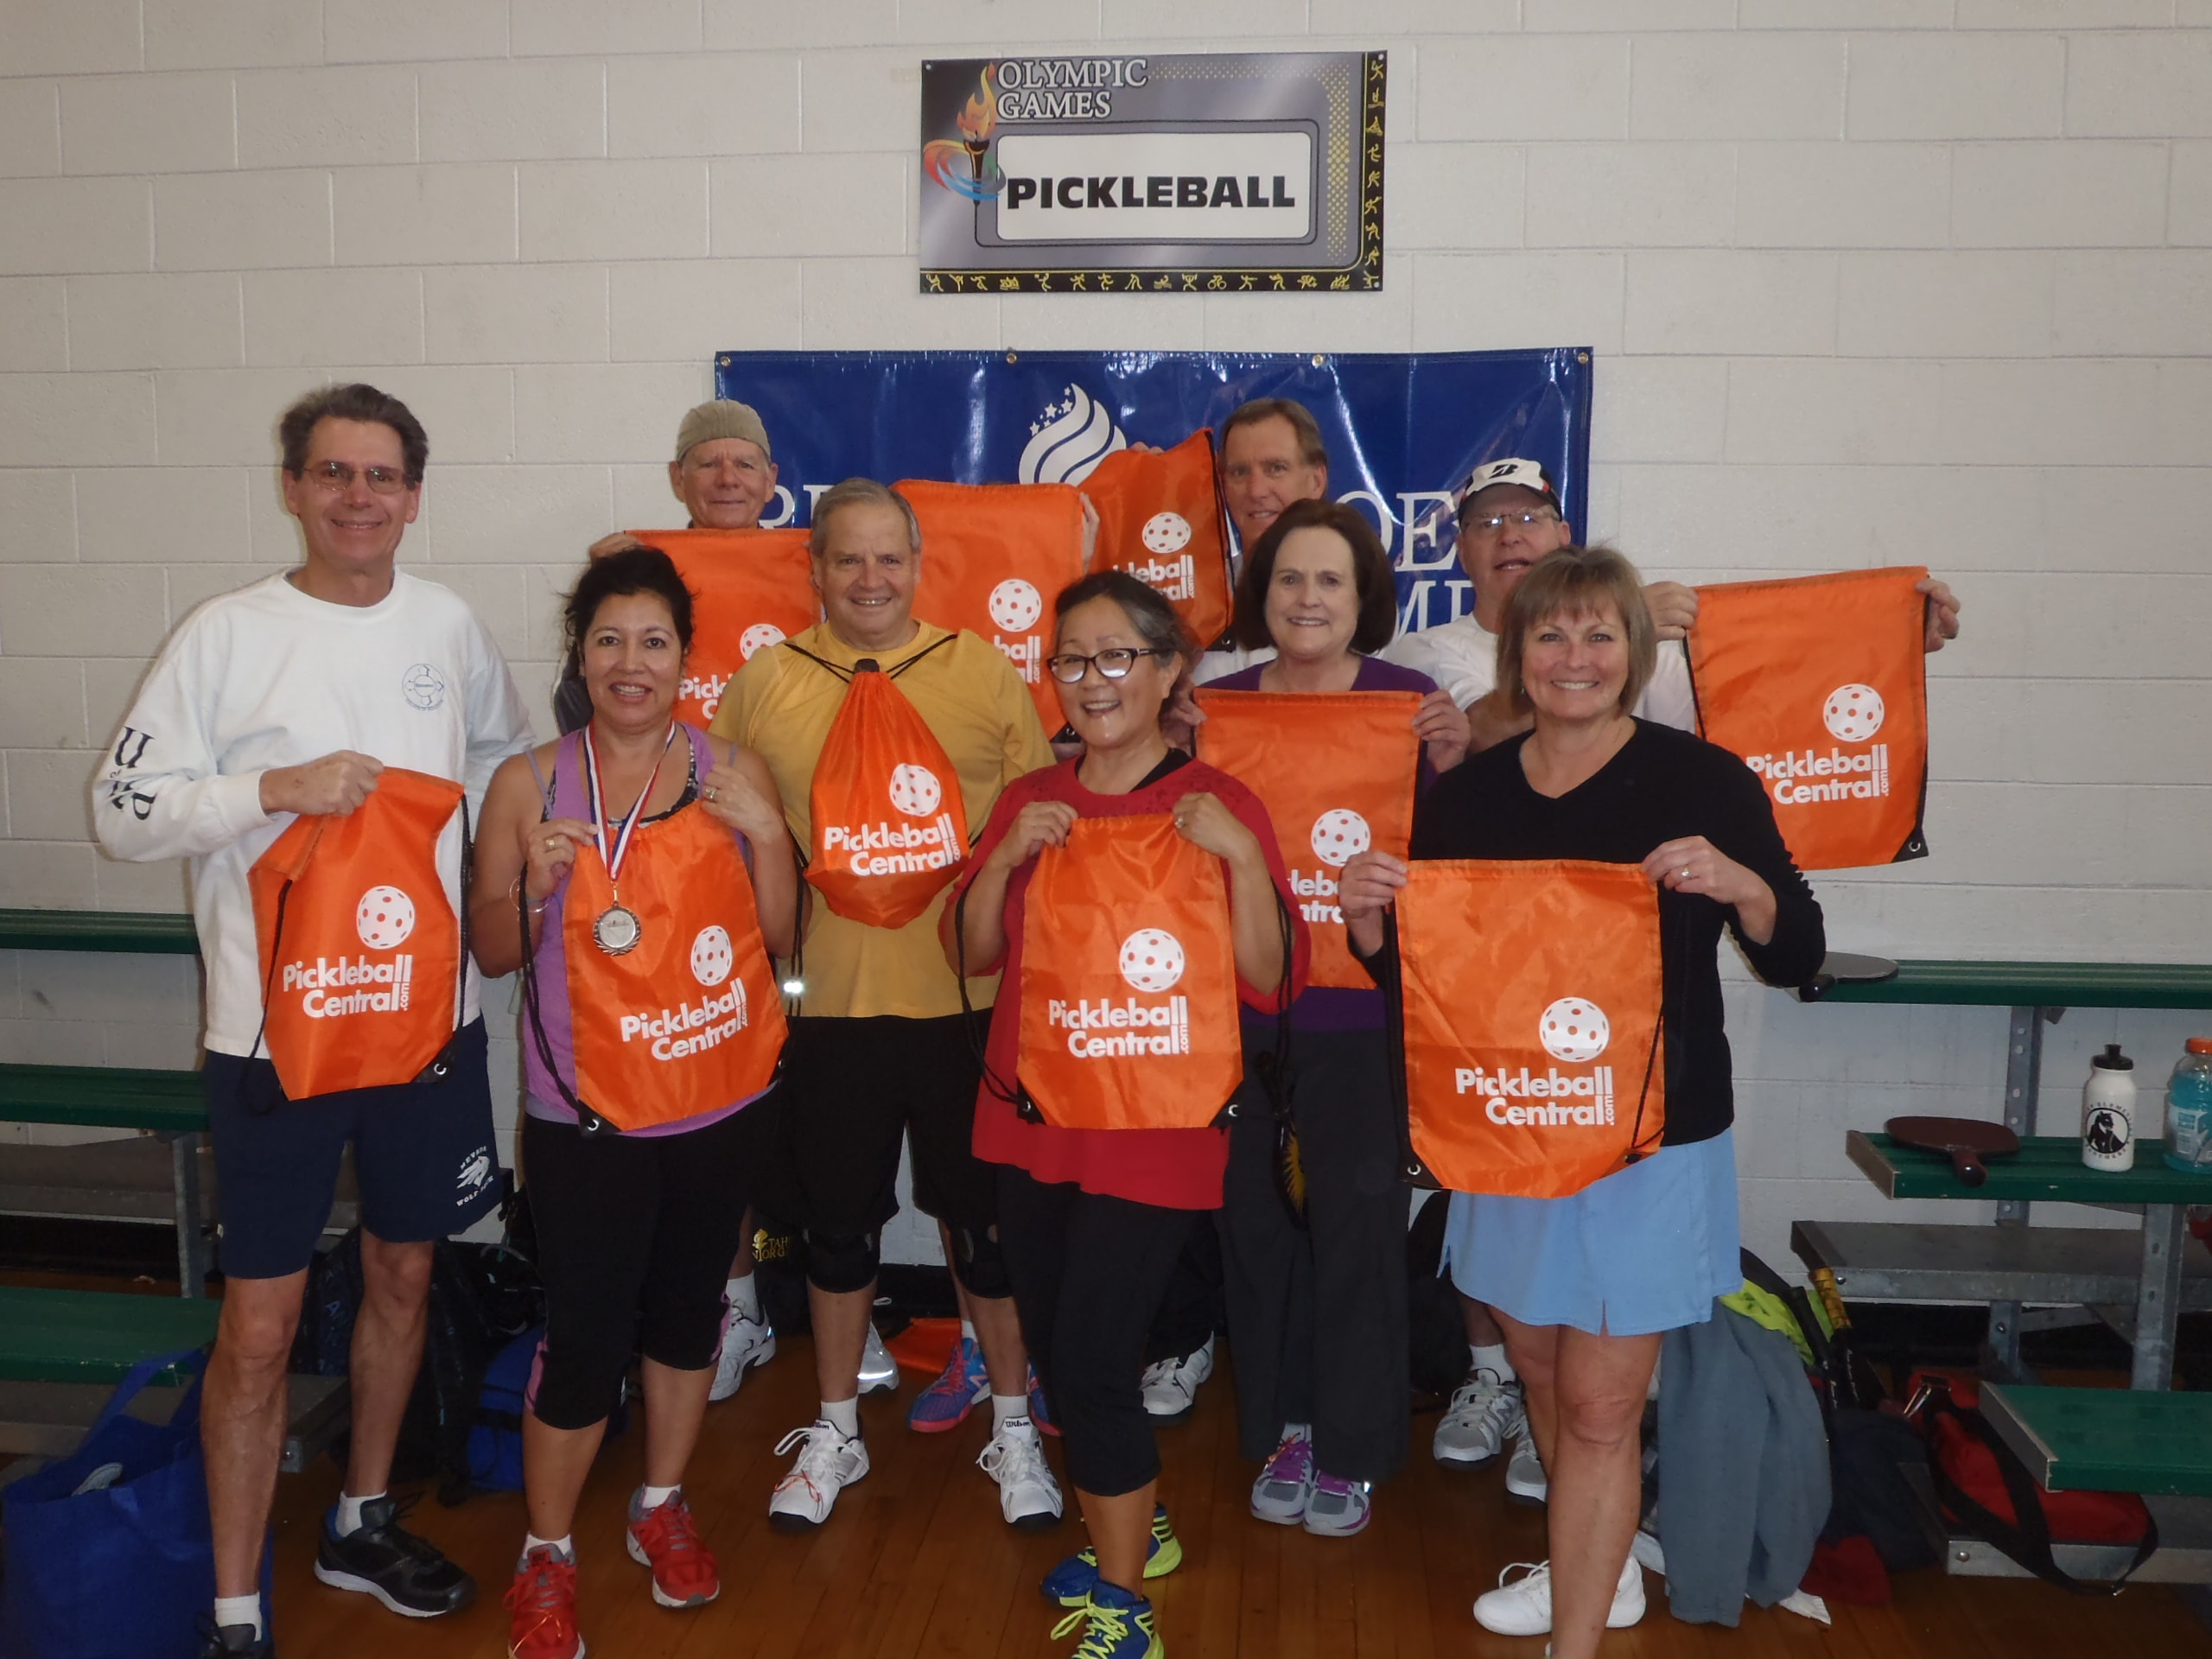 Pickleball players at a tournament holding goodie bags from PickleballCentral.com